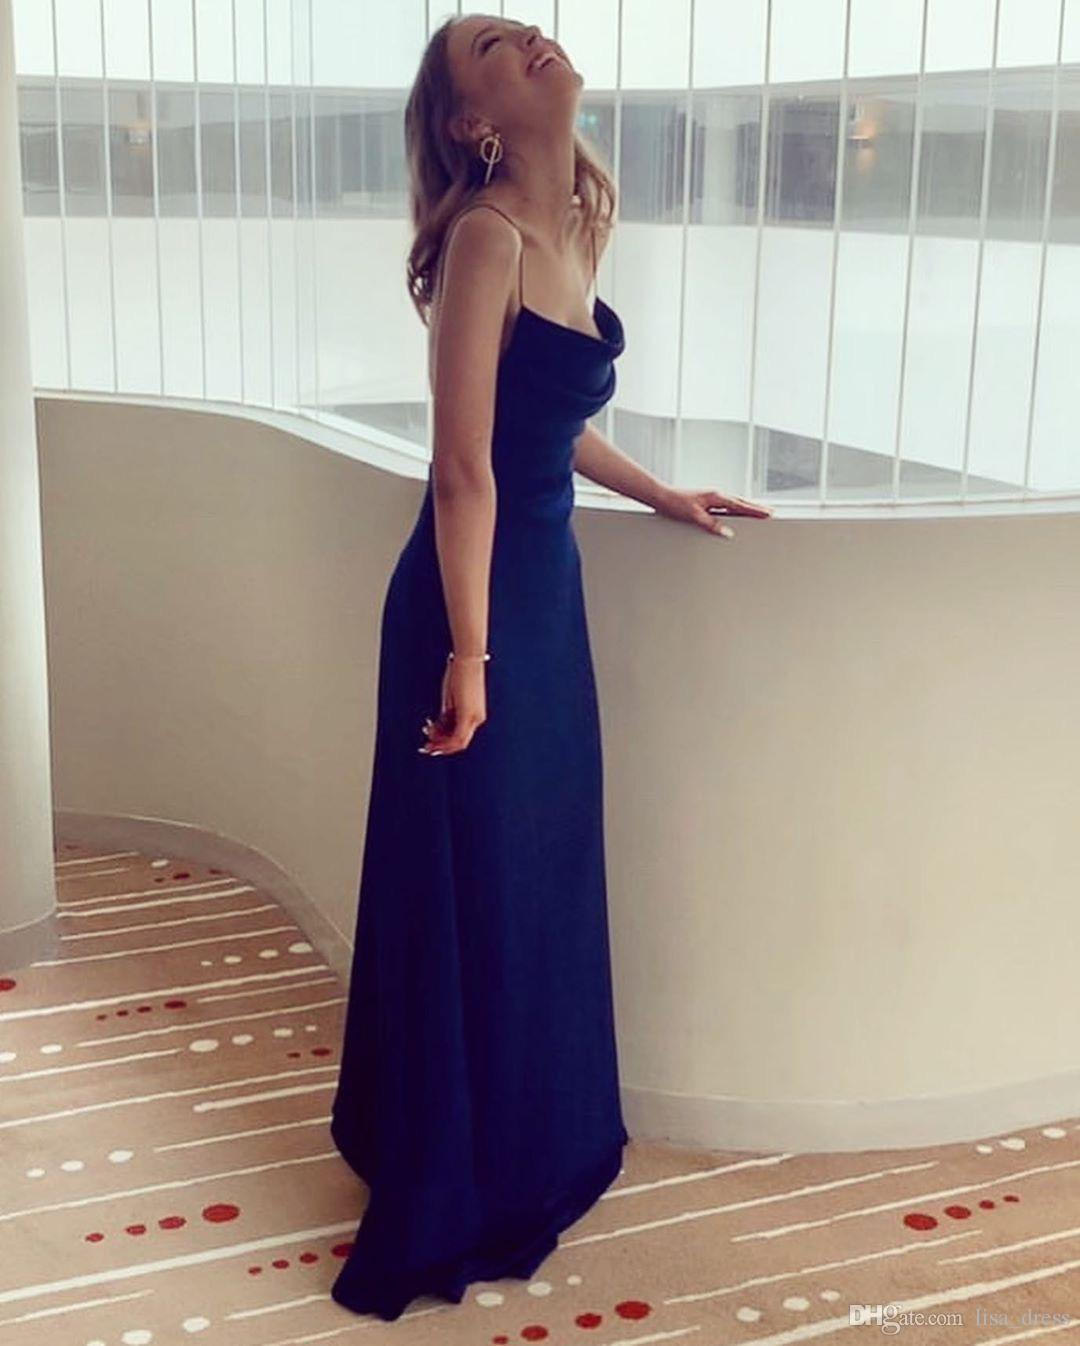 Women's Sexy backless Blue Spaghetti Strap Satin Prom Dress Long A Line Formal Gowns cocktail evening dresses gown bridesmaid party dresses